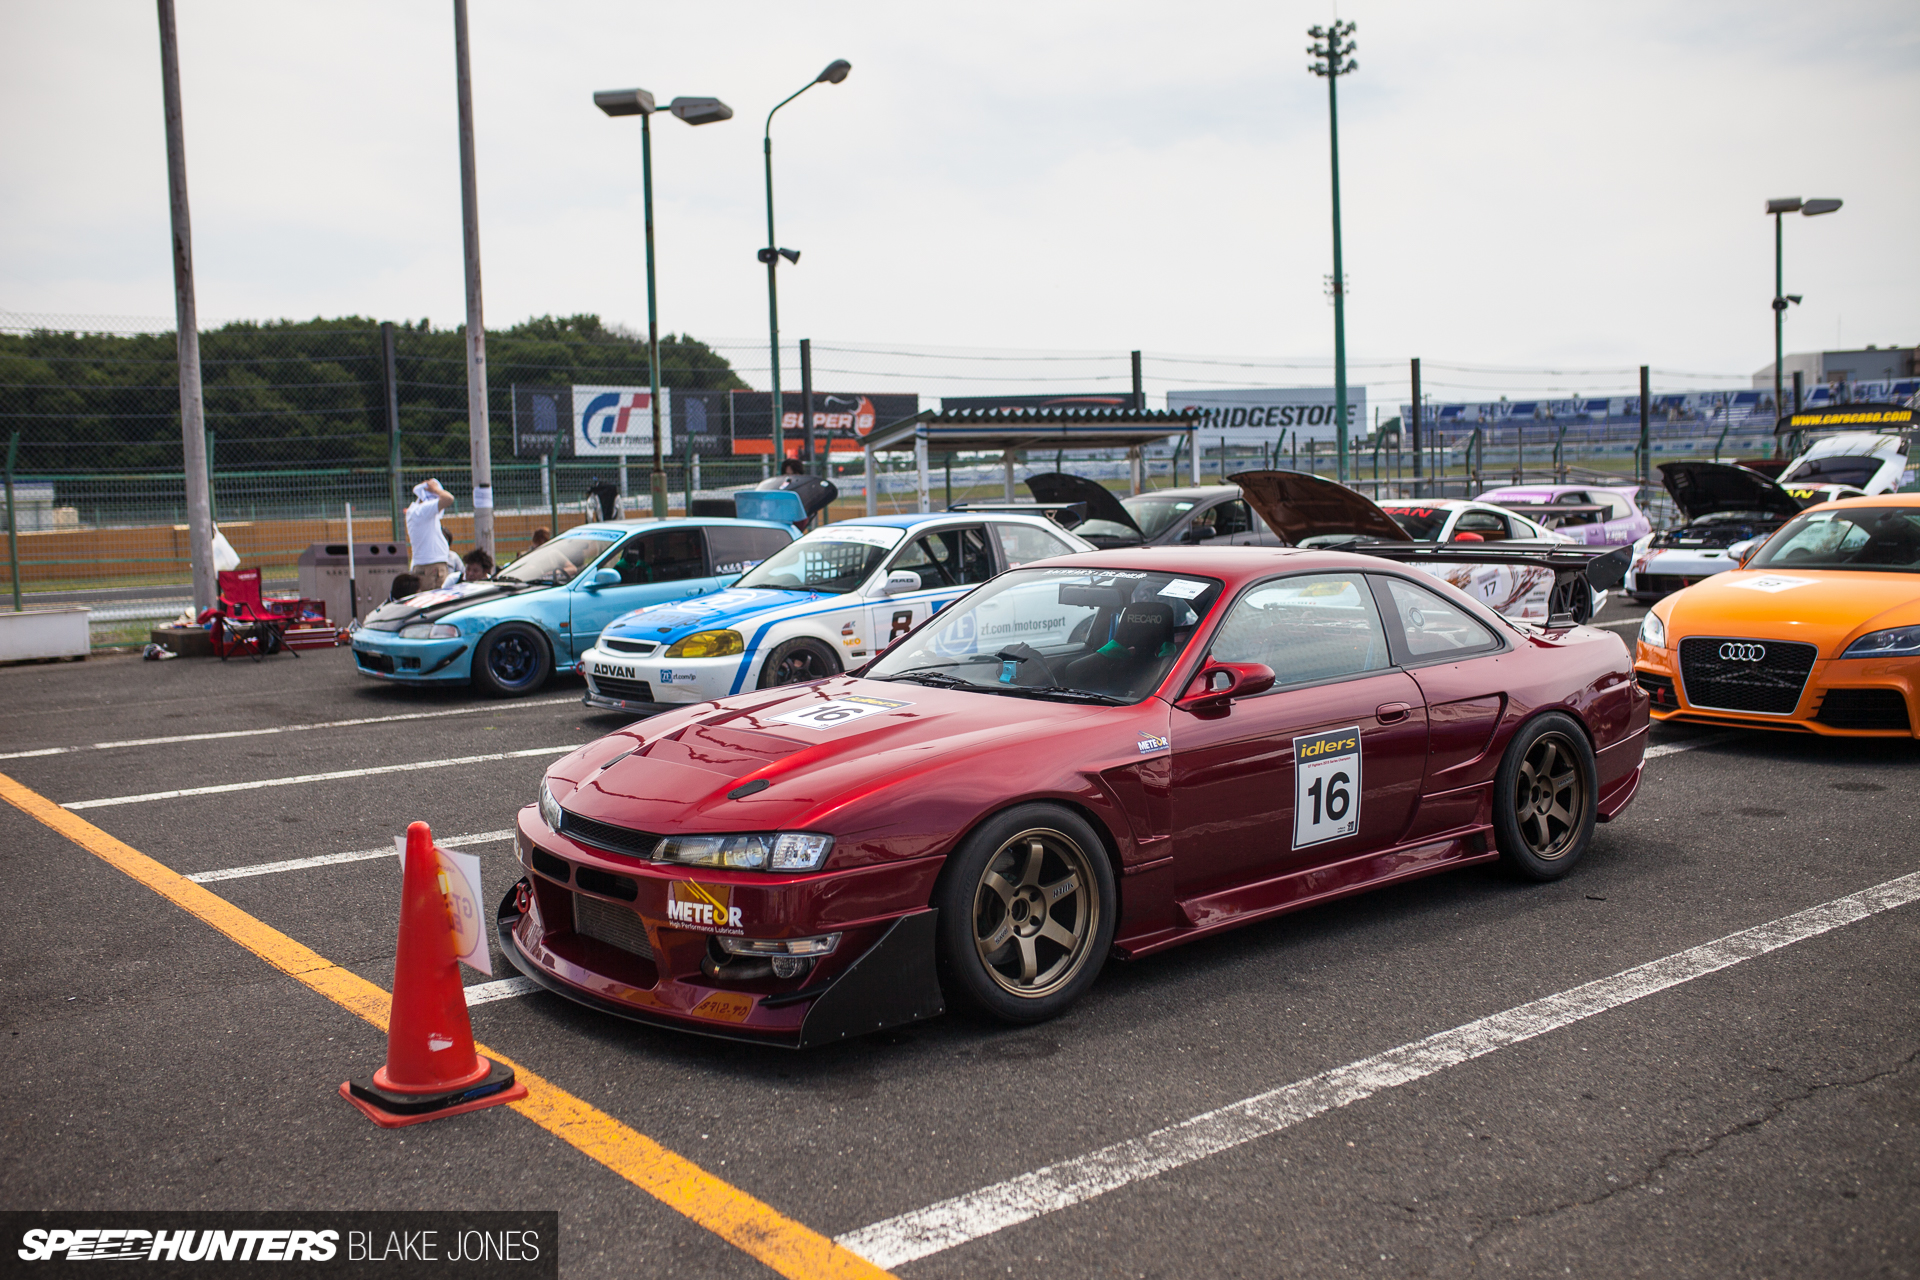 Caught In The Grip: A Time-Attacking S14